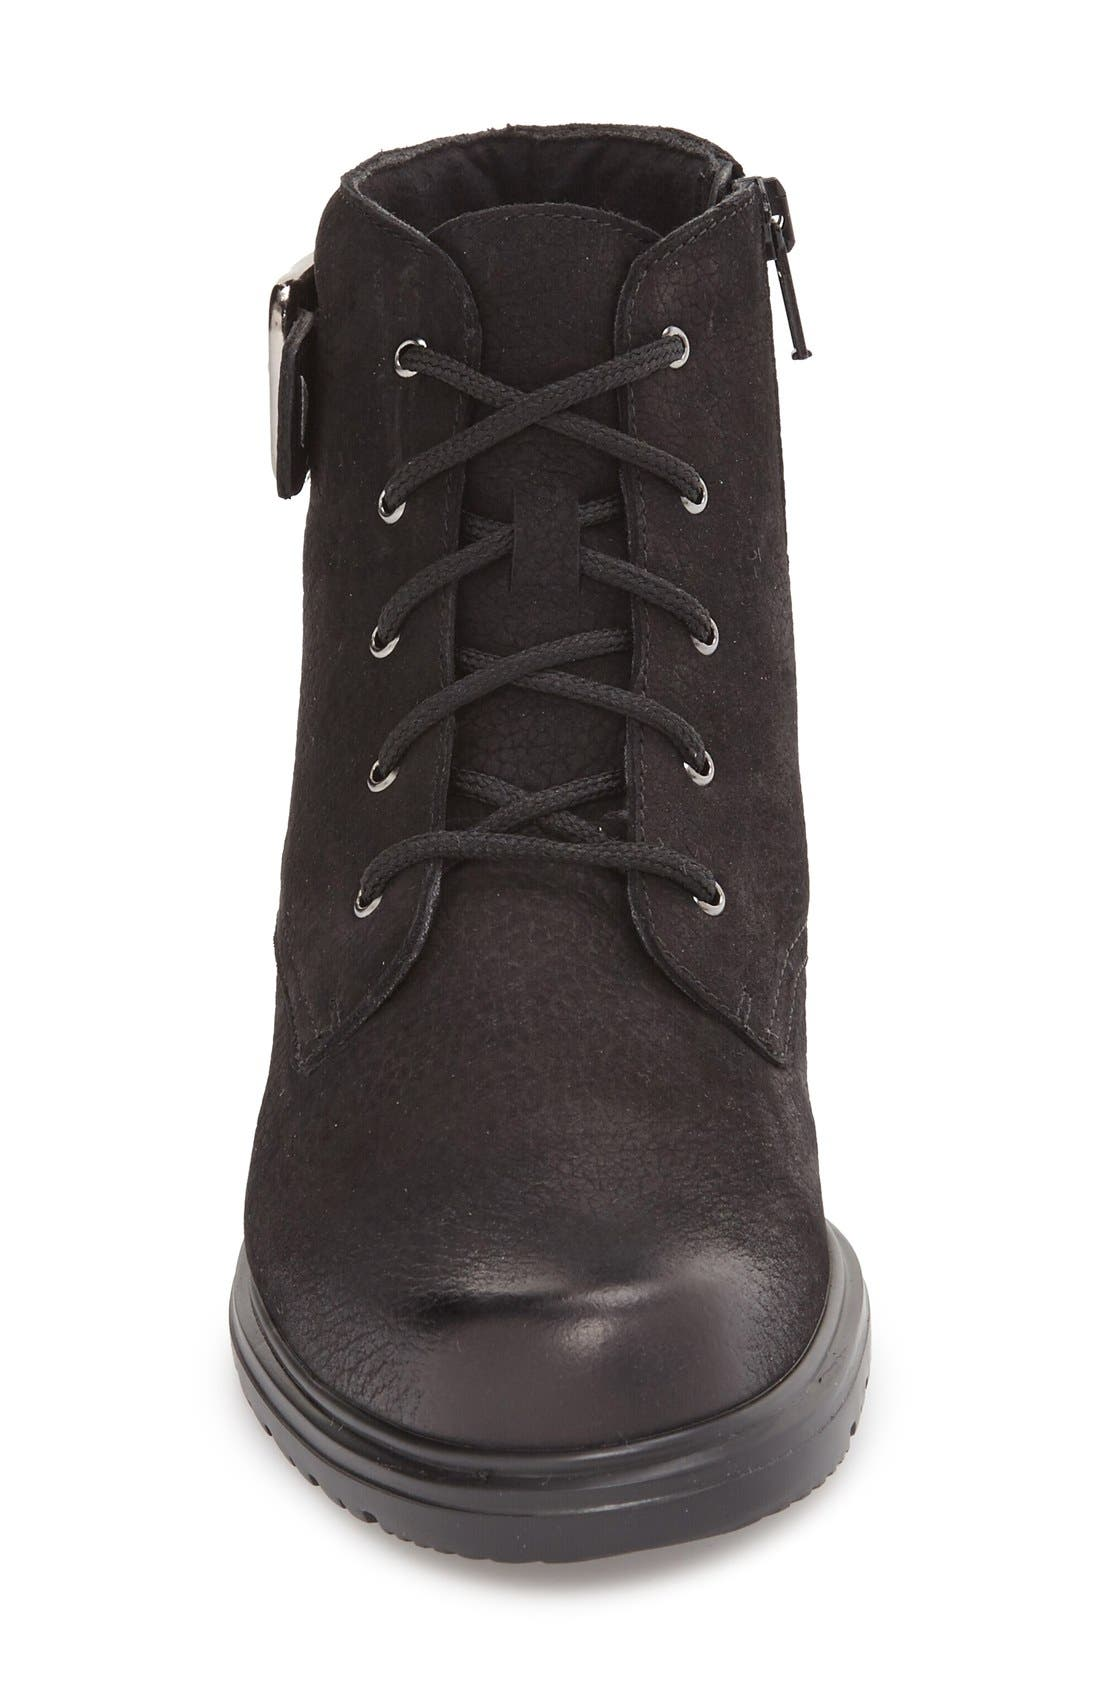 Bradley Water Resistant Boot,                             Alternate thumbnail 3, color,                             BLACK TUMBLED NUBUCK LEATHER